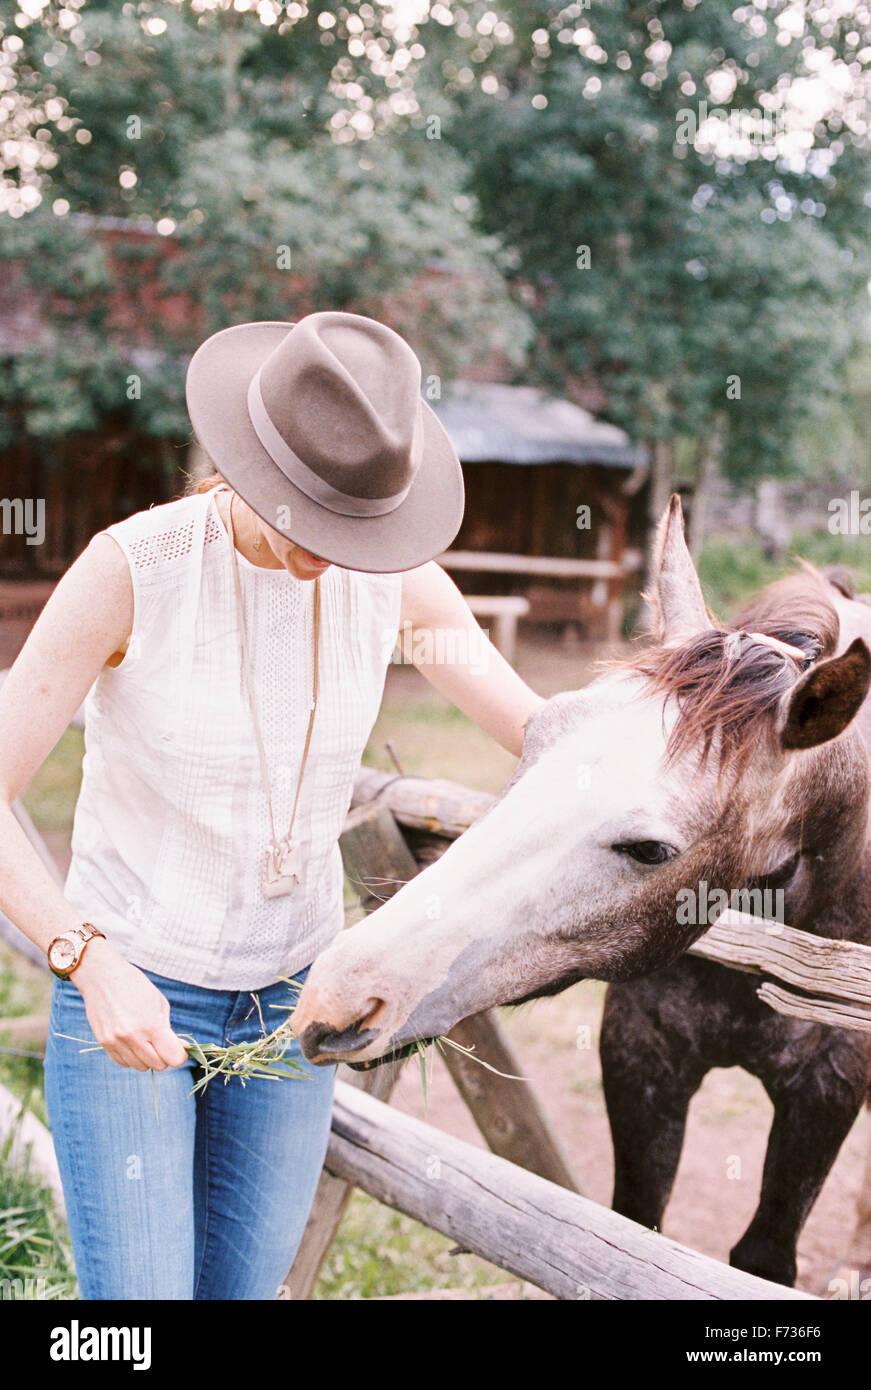 Woman feeding a horse in a paddock. - Stock Image